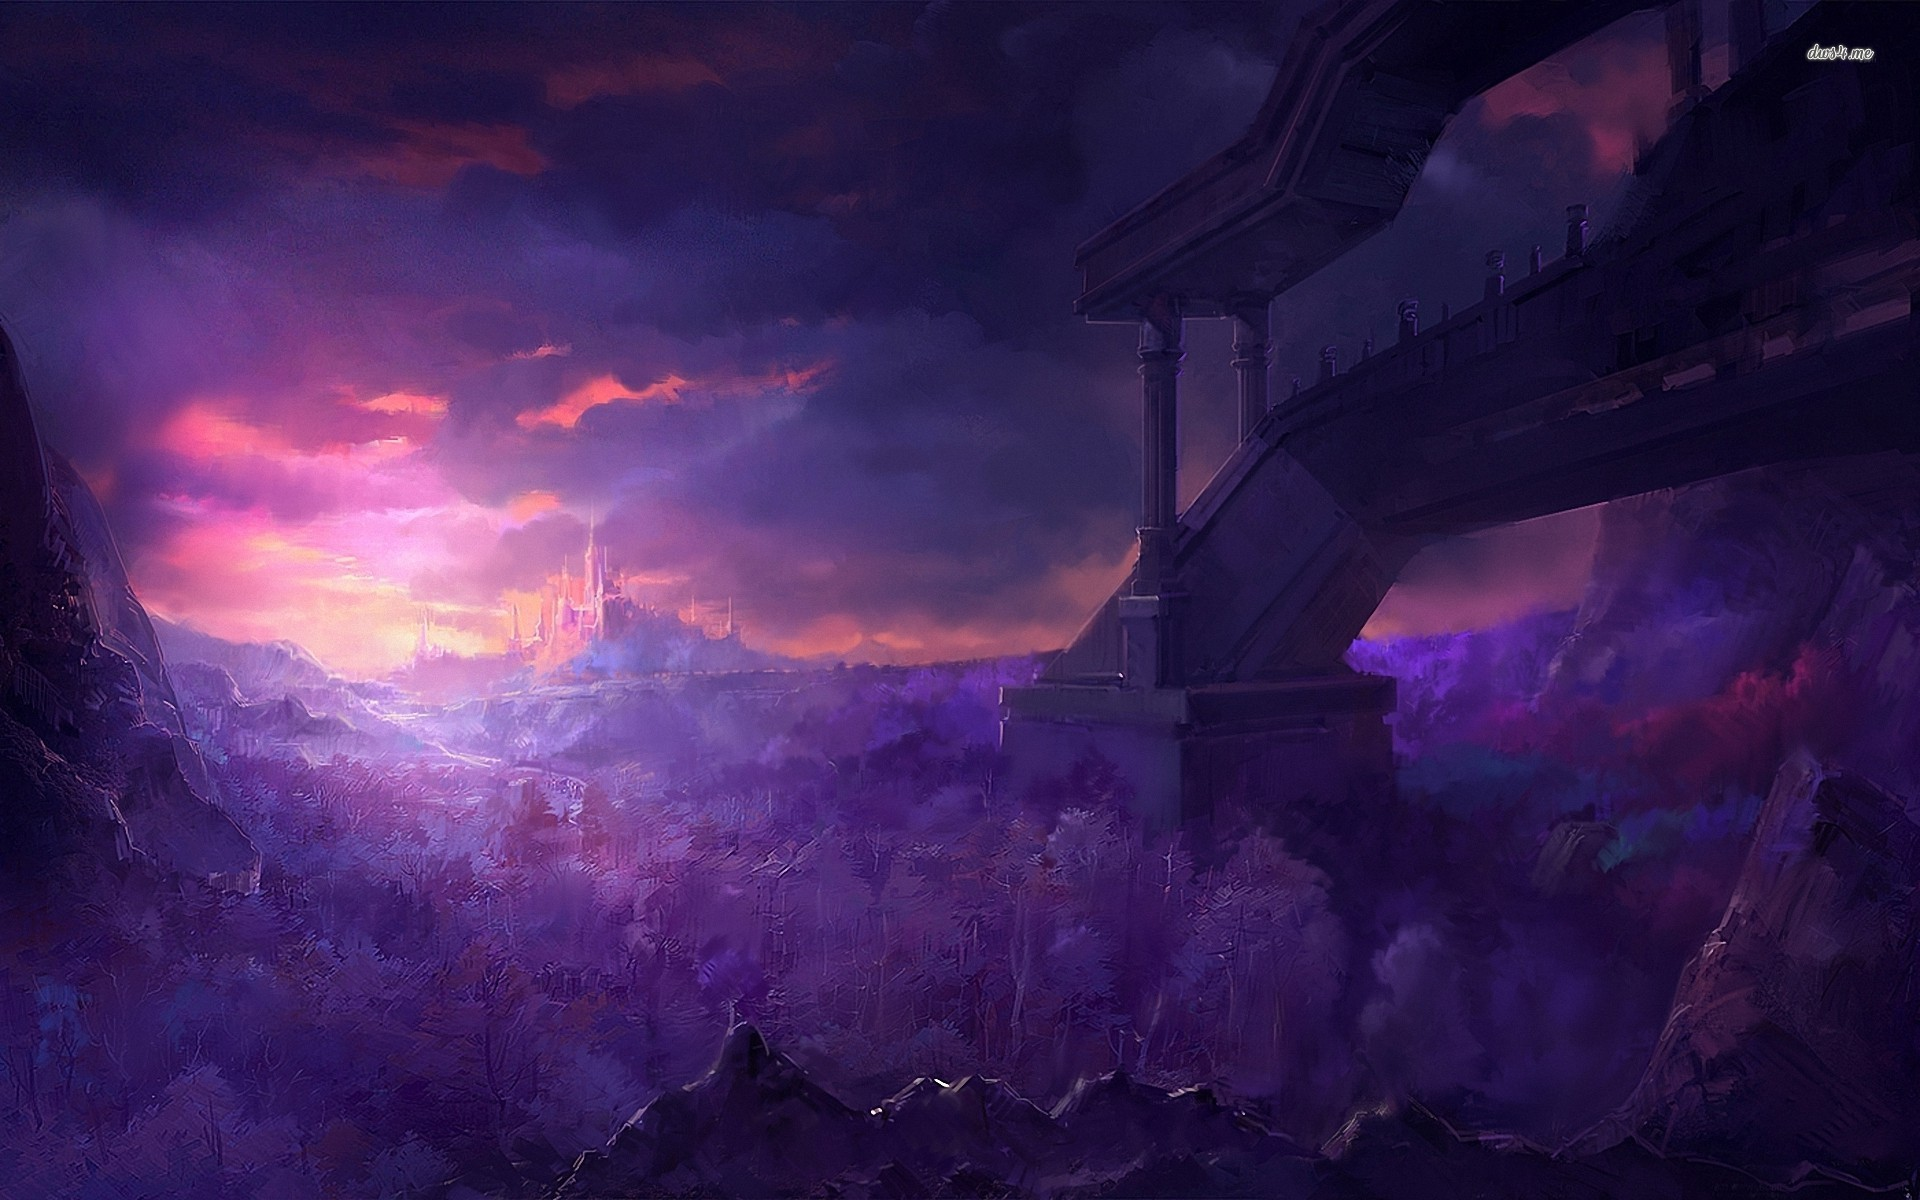 image - castle-under-the-purple-sky-fantasy-hd-wallpaper-70872